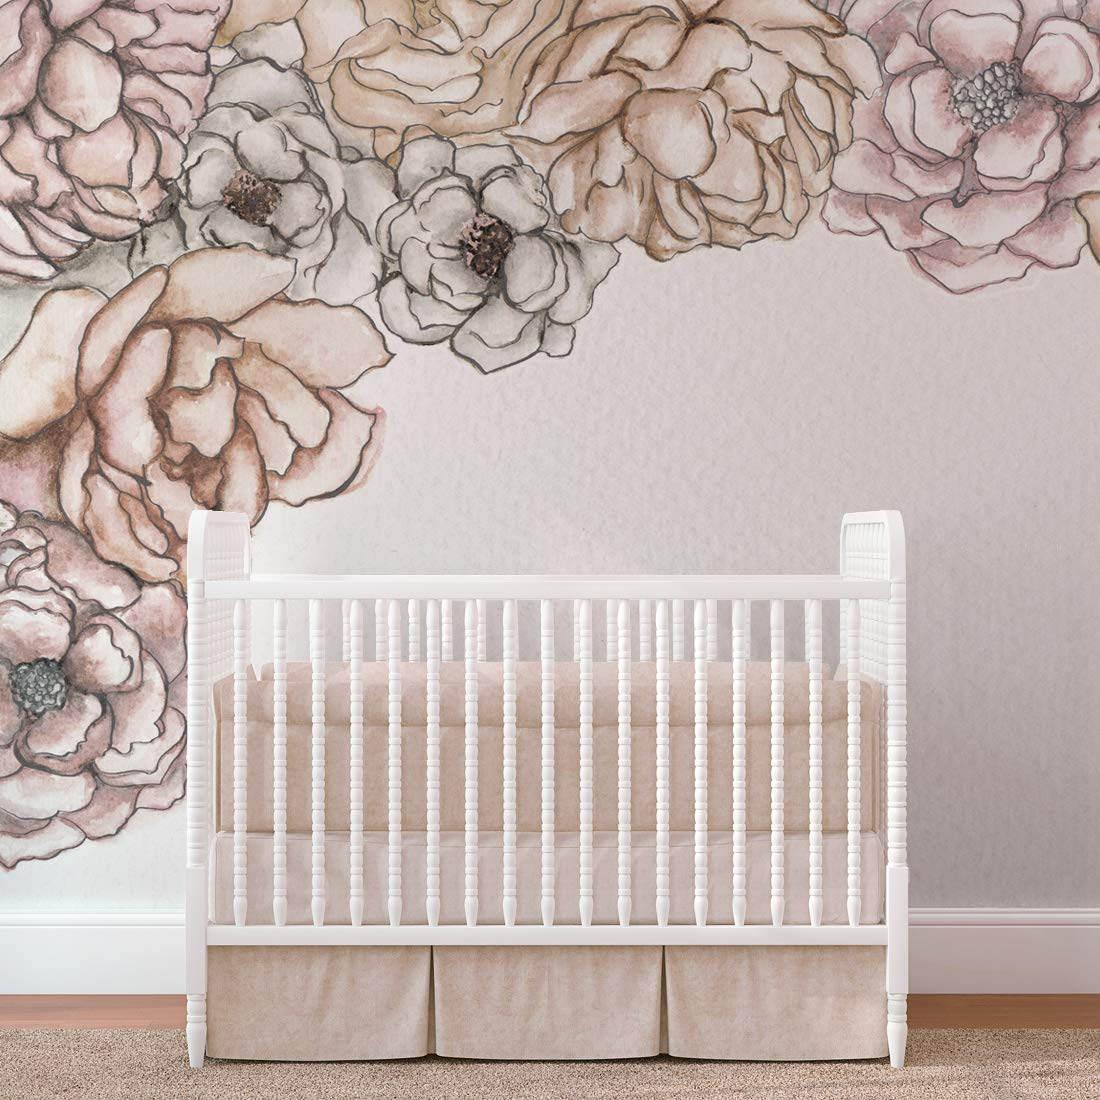 Wall Mural - Pink and Neutral Peony and Rose Flowers Removable Pre-Pasted Paper Mural. Easy to Apply and and Easy to Remove. 9' Wide x 8' Tall. by Flipside.